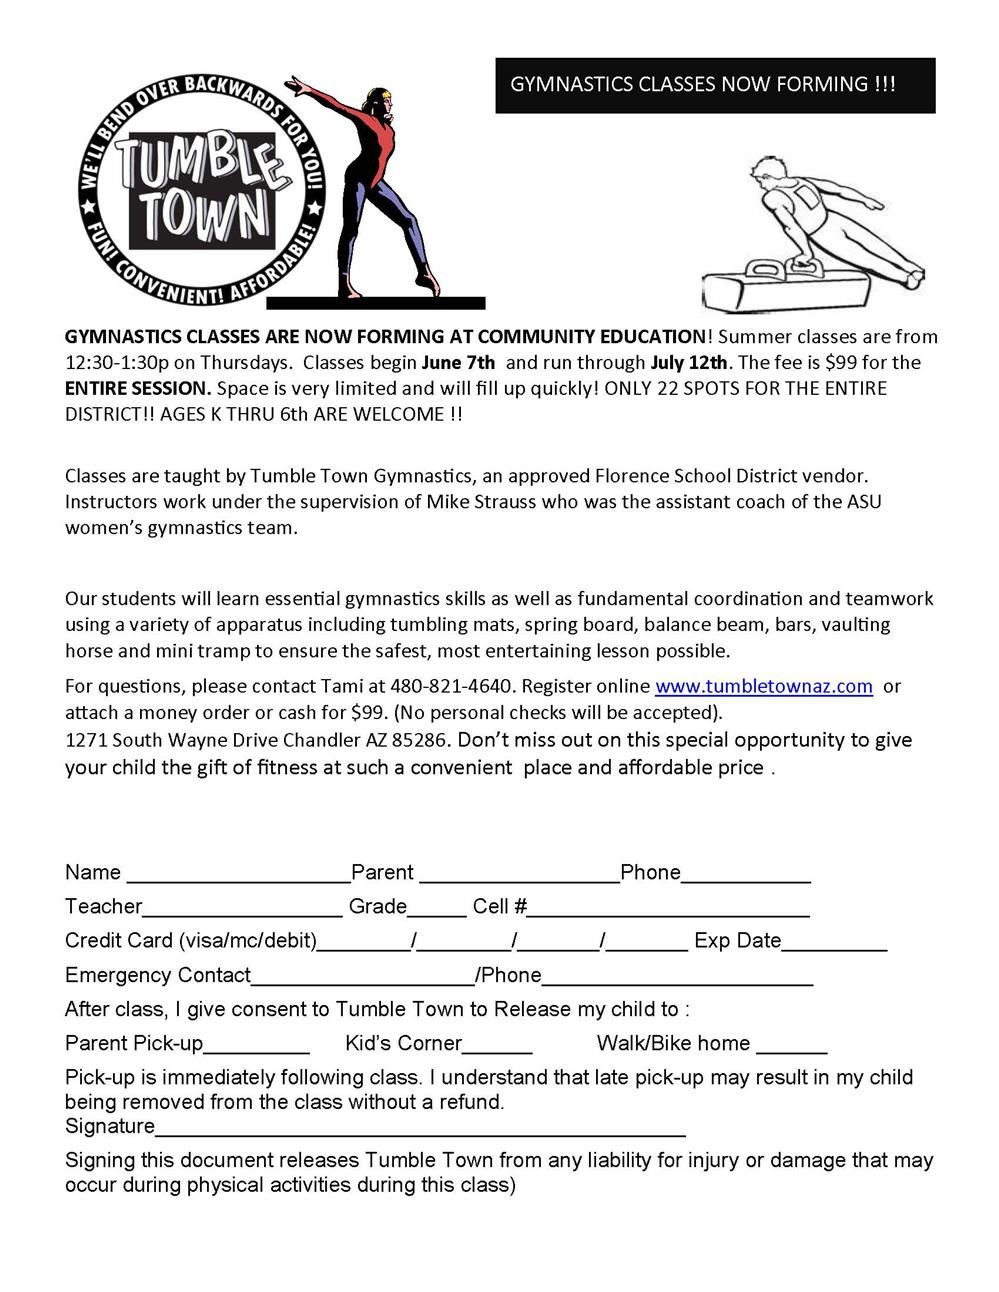 This flyer contains sign up information for tumble town.